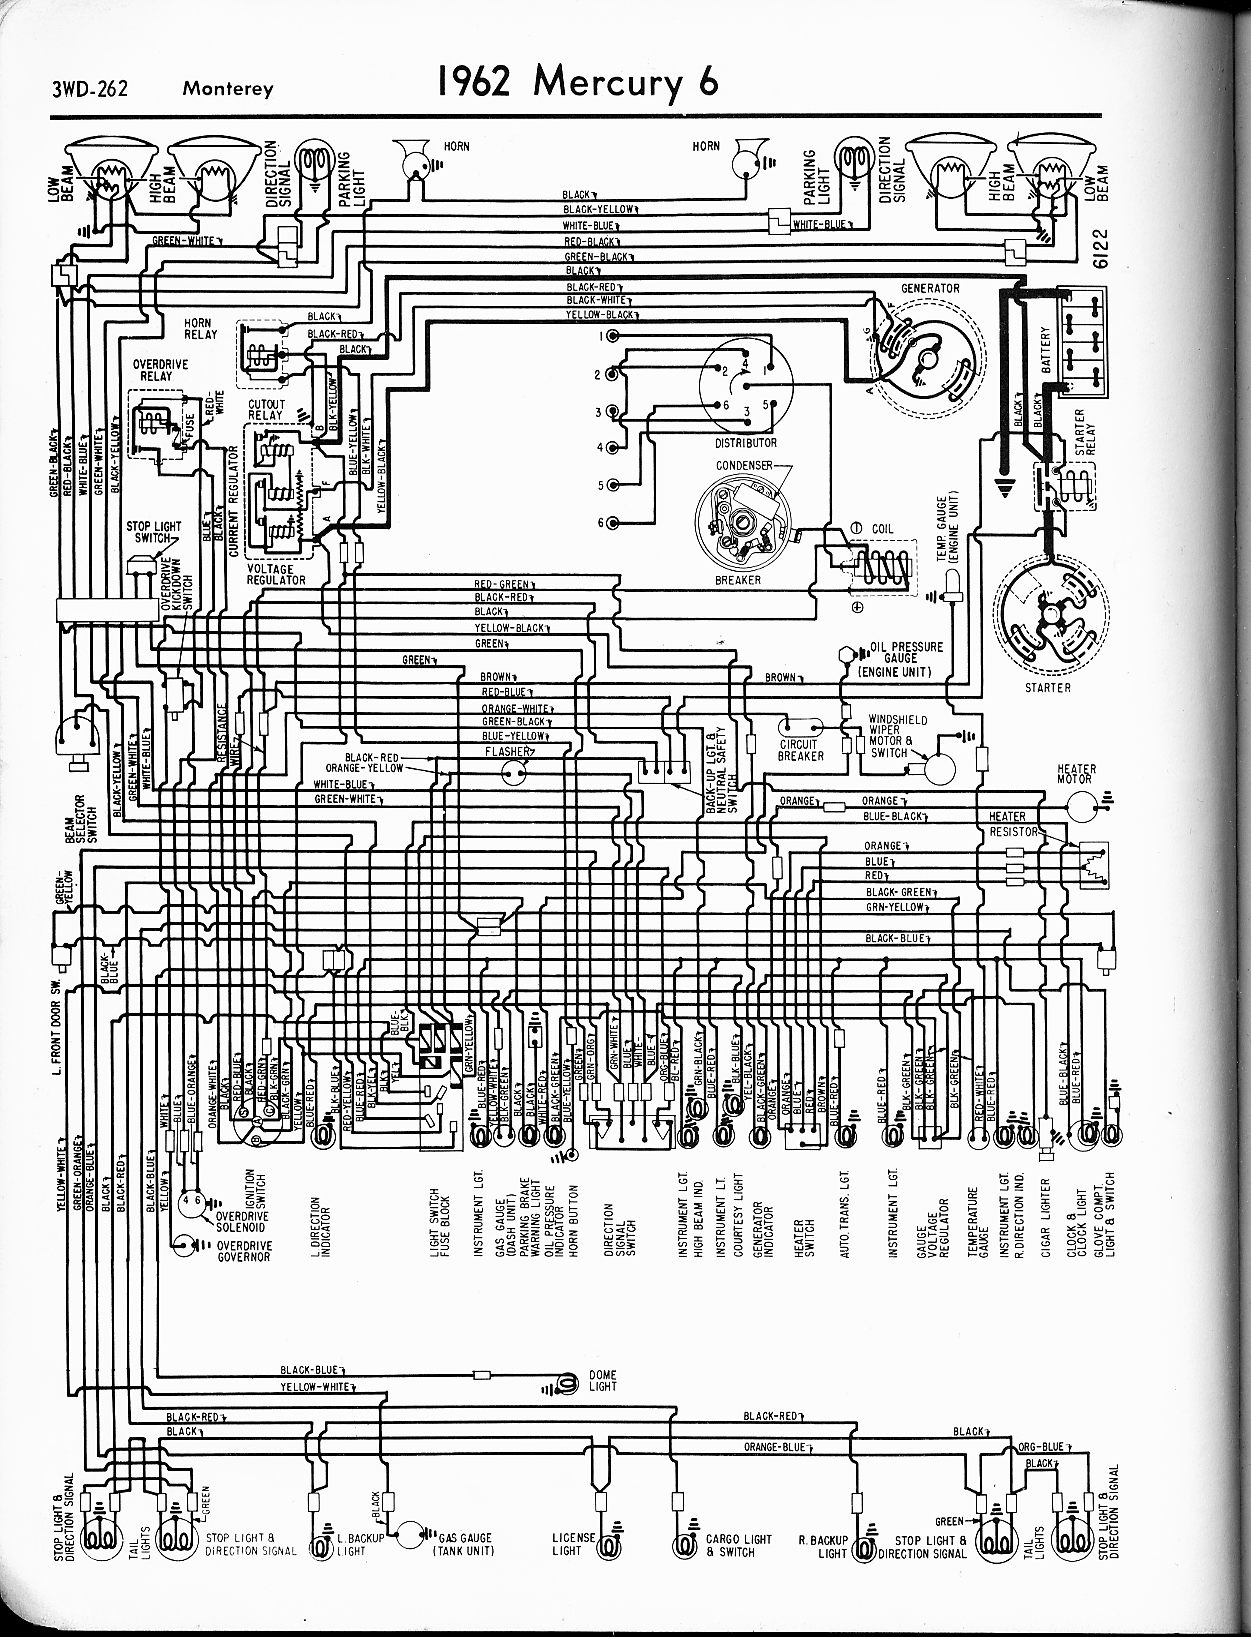 [DIAGRAM_4PO]  B1296C 1966 Ford F100 Ignition Switch Wiring Diagram | Wiring Library | 1966 Ford Wiring Diagram Schematic |  | Wiring Library